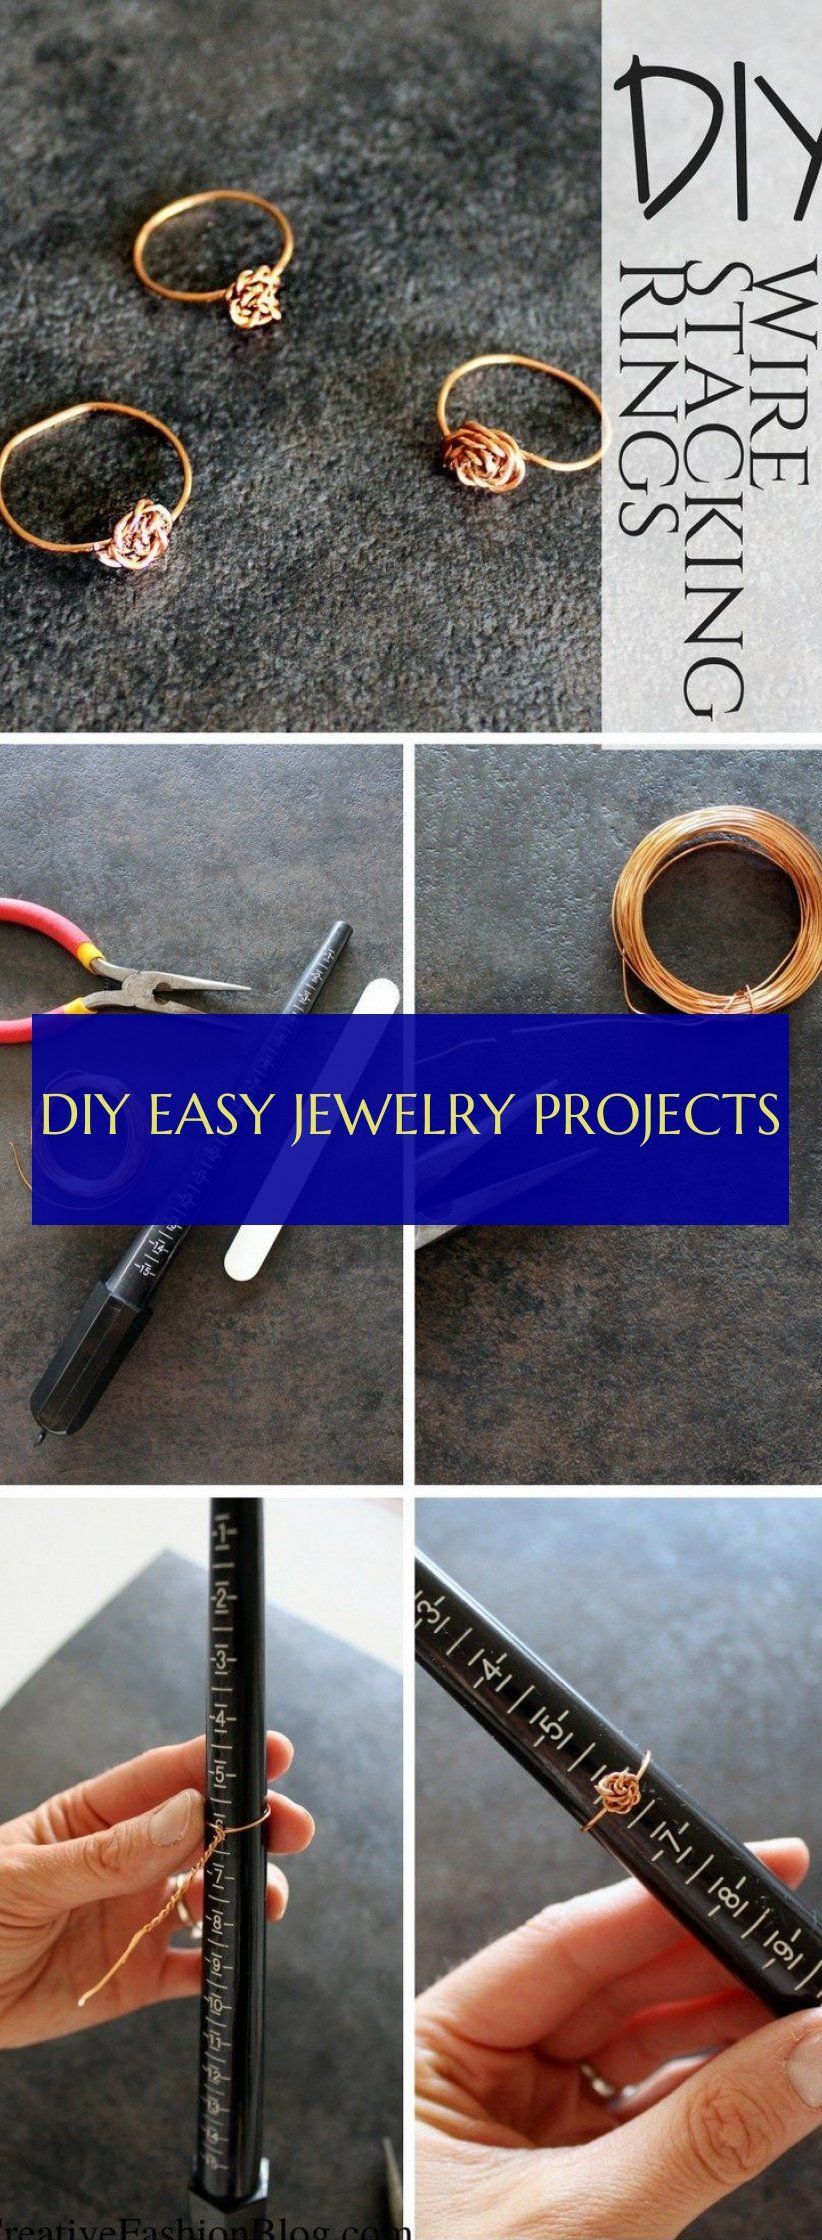 diy easy jewelry projects